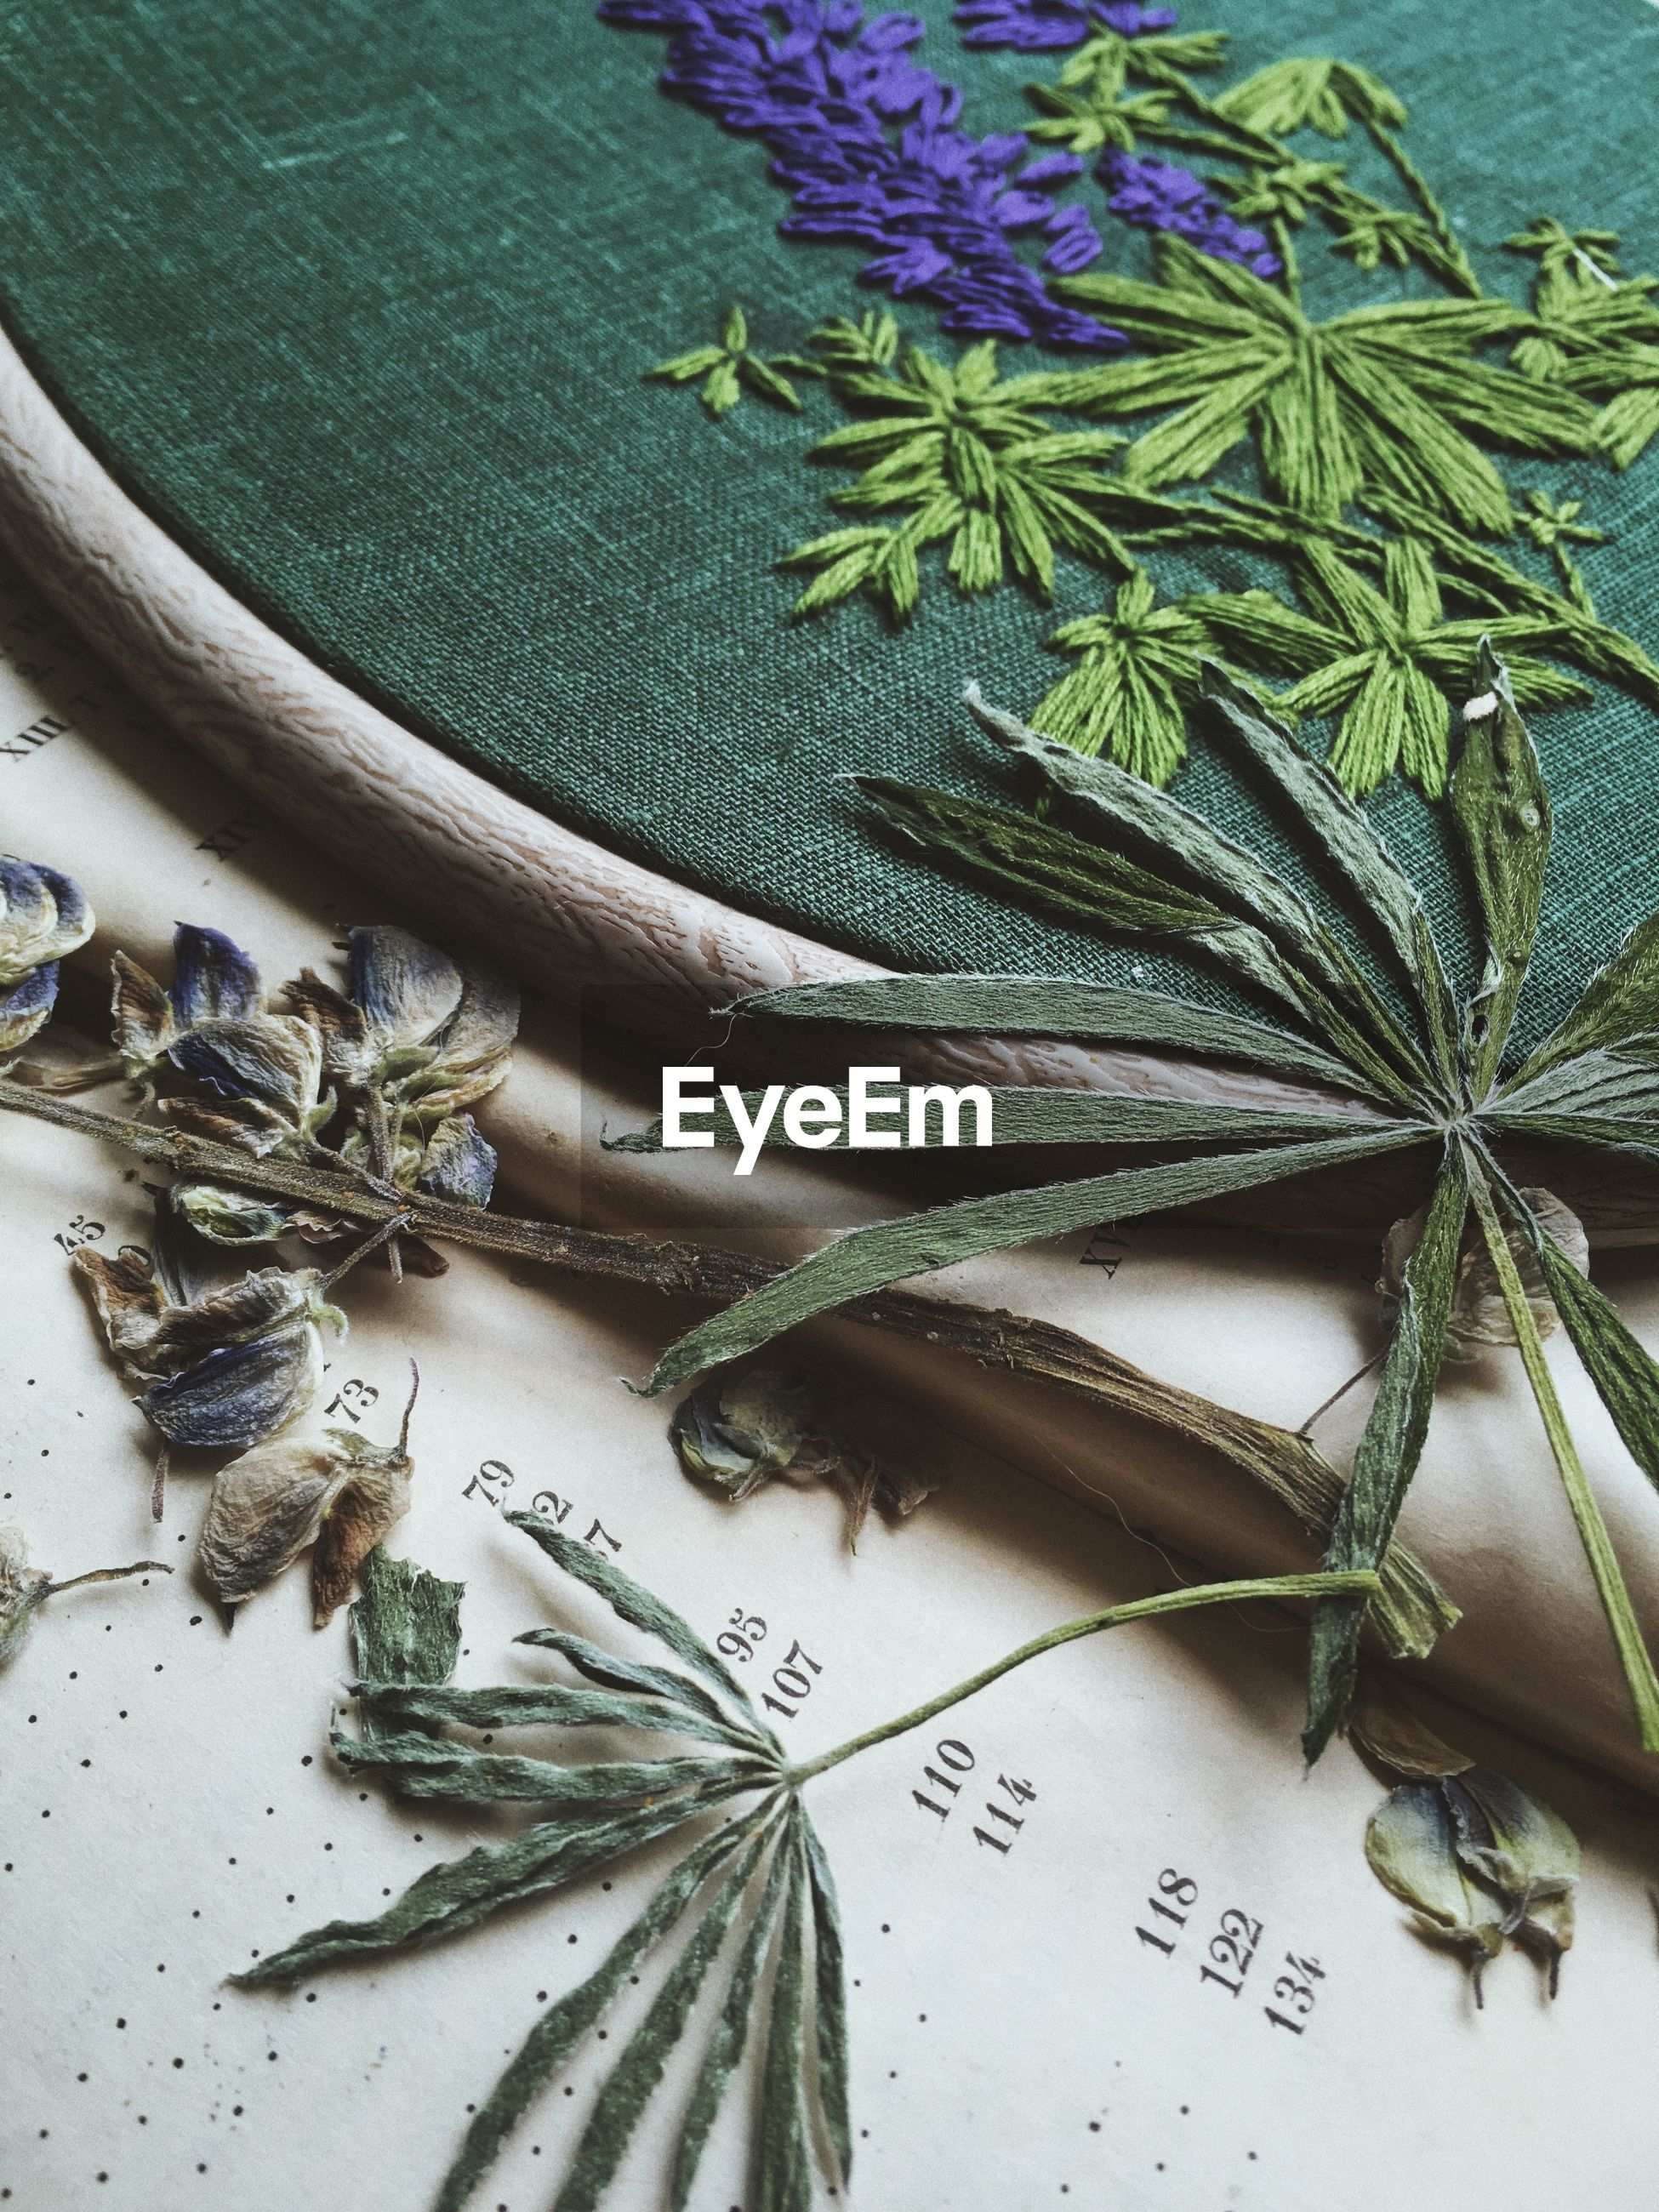 HIGH ANGLE VIEW OF LEAVES AND PLANT IN TABLE